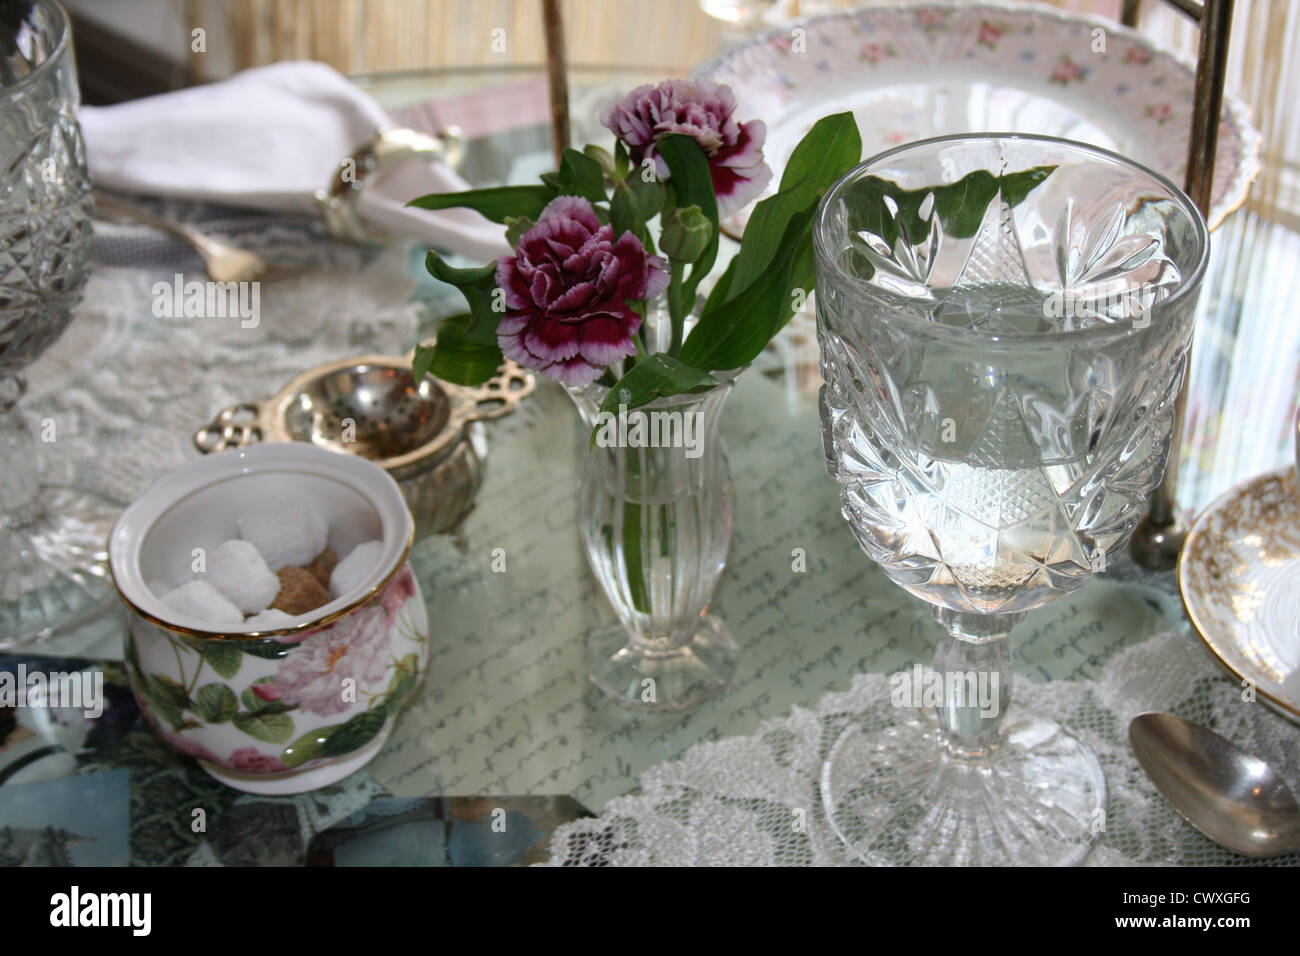 antique dinner setting porcelain china lace crystal dinnerware and silverware - Stock Image & Crystal Vases Stock Photos u0026 Crystal Vases Stock Images - Alamy